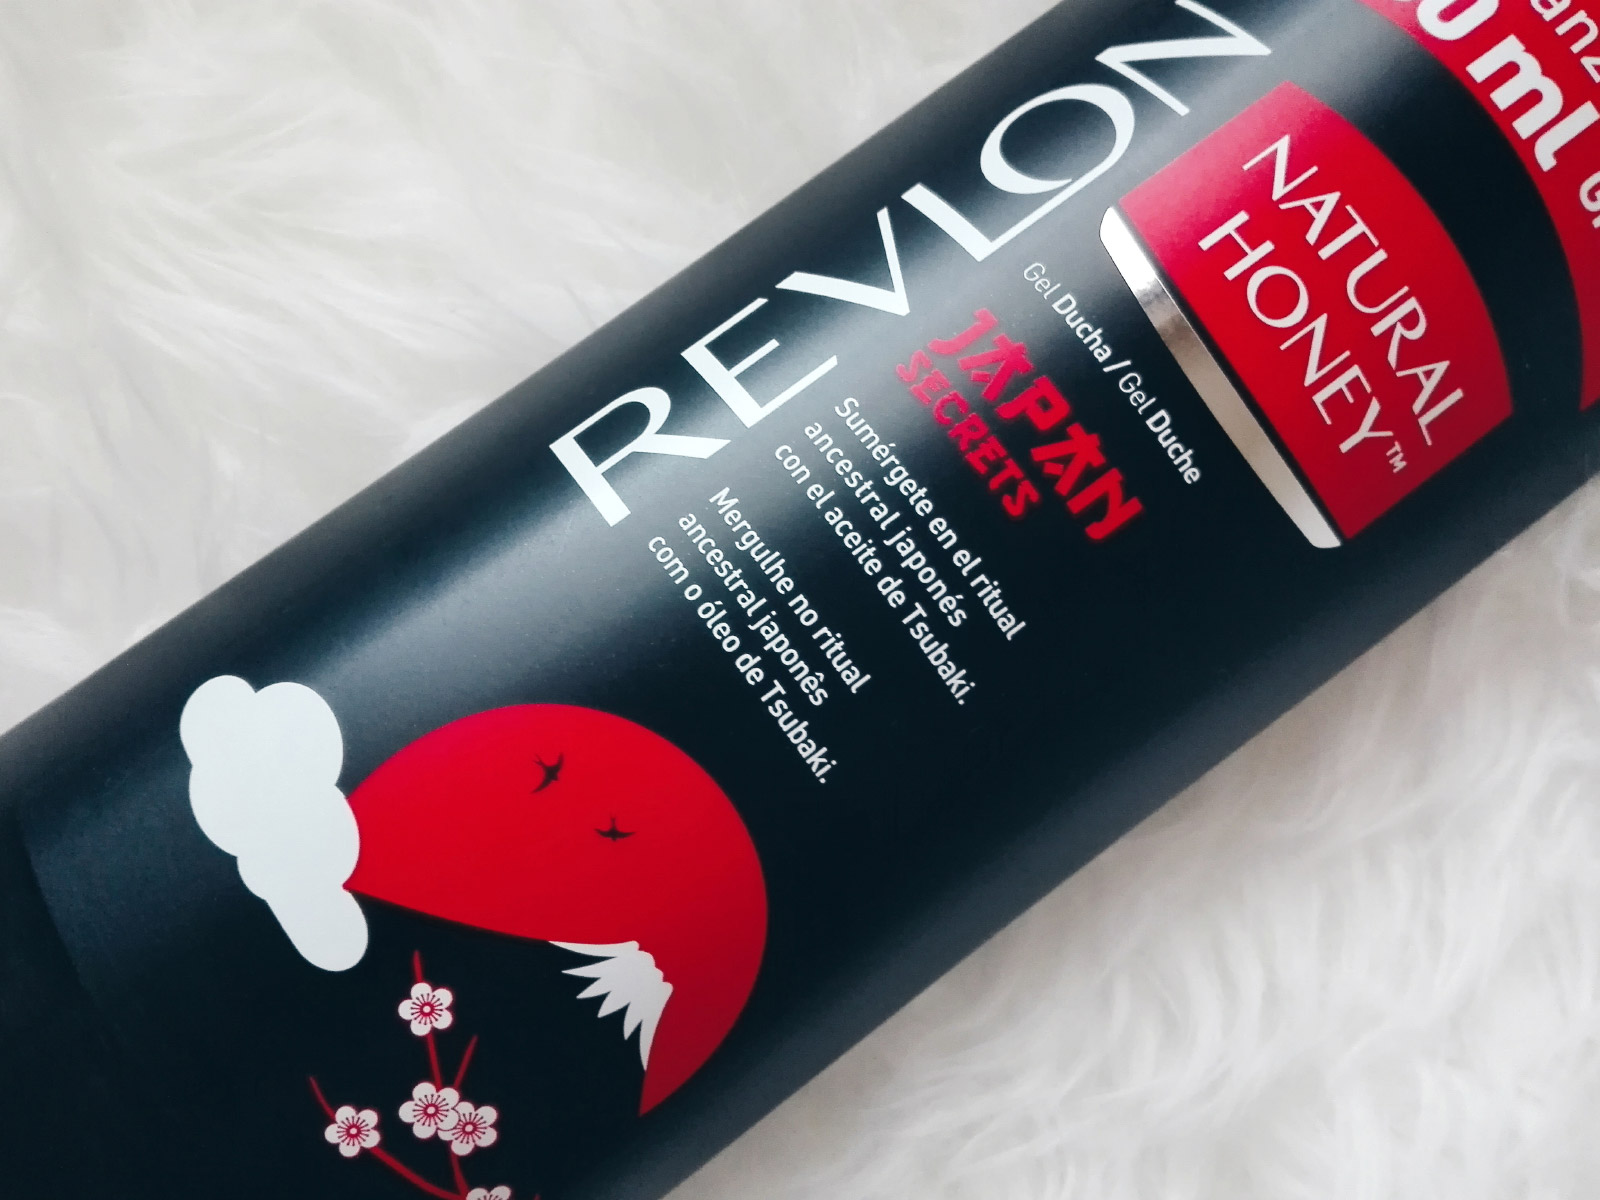 Primor Haul Revlon Natural Honey Japan Secrets Tsubaki Oil